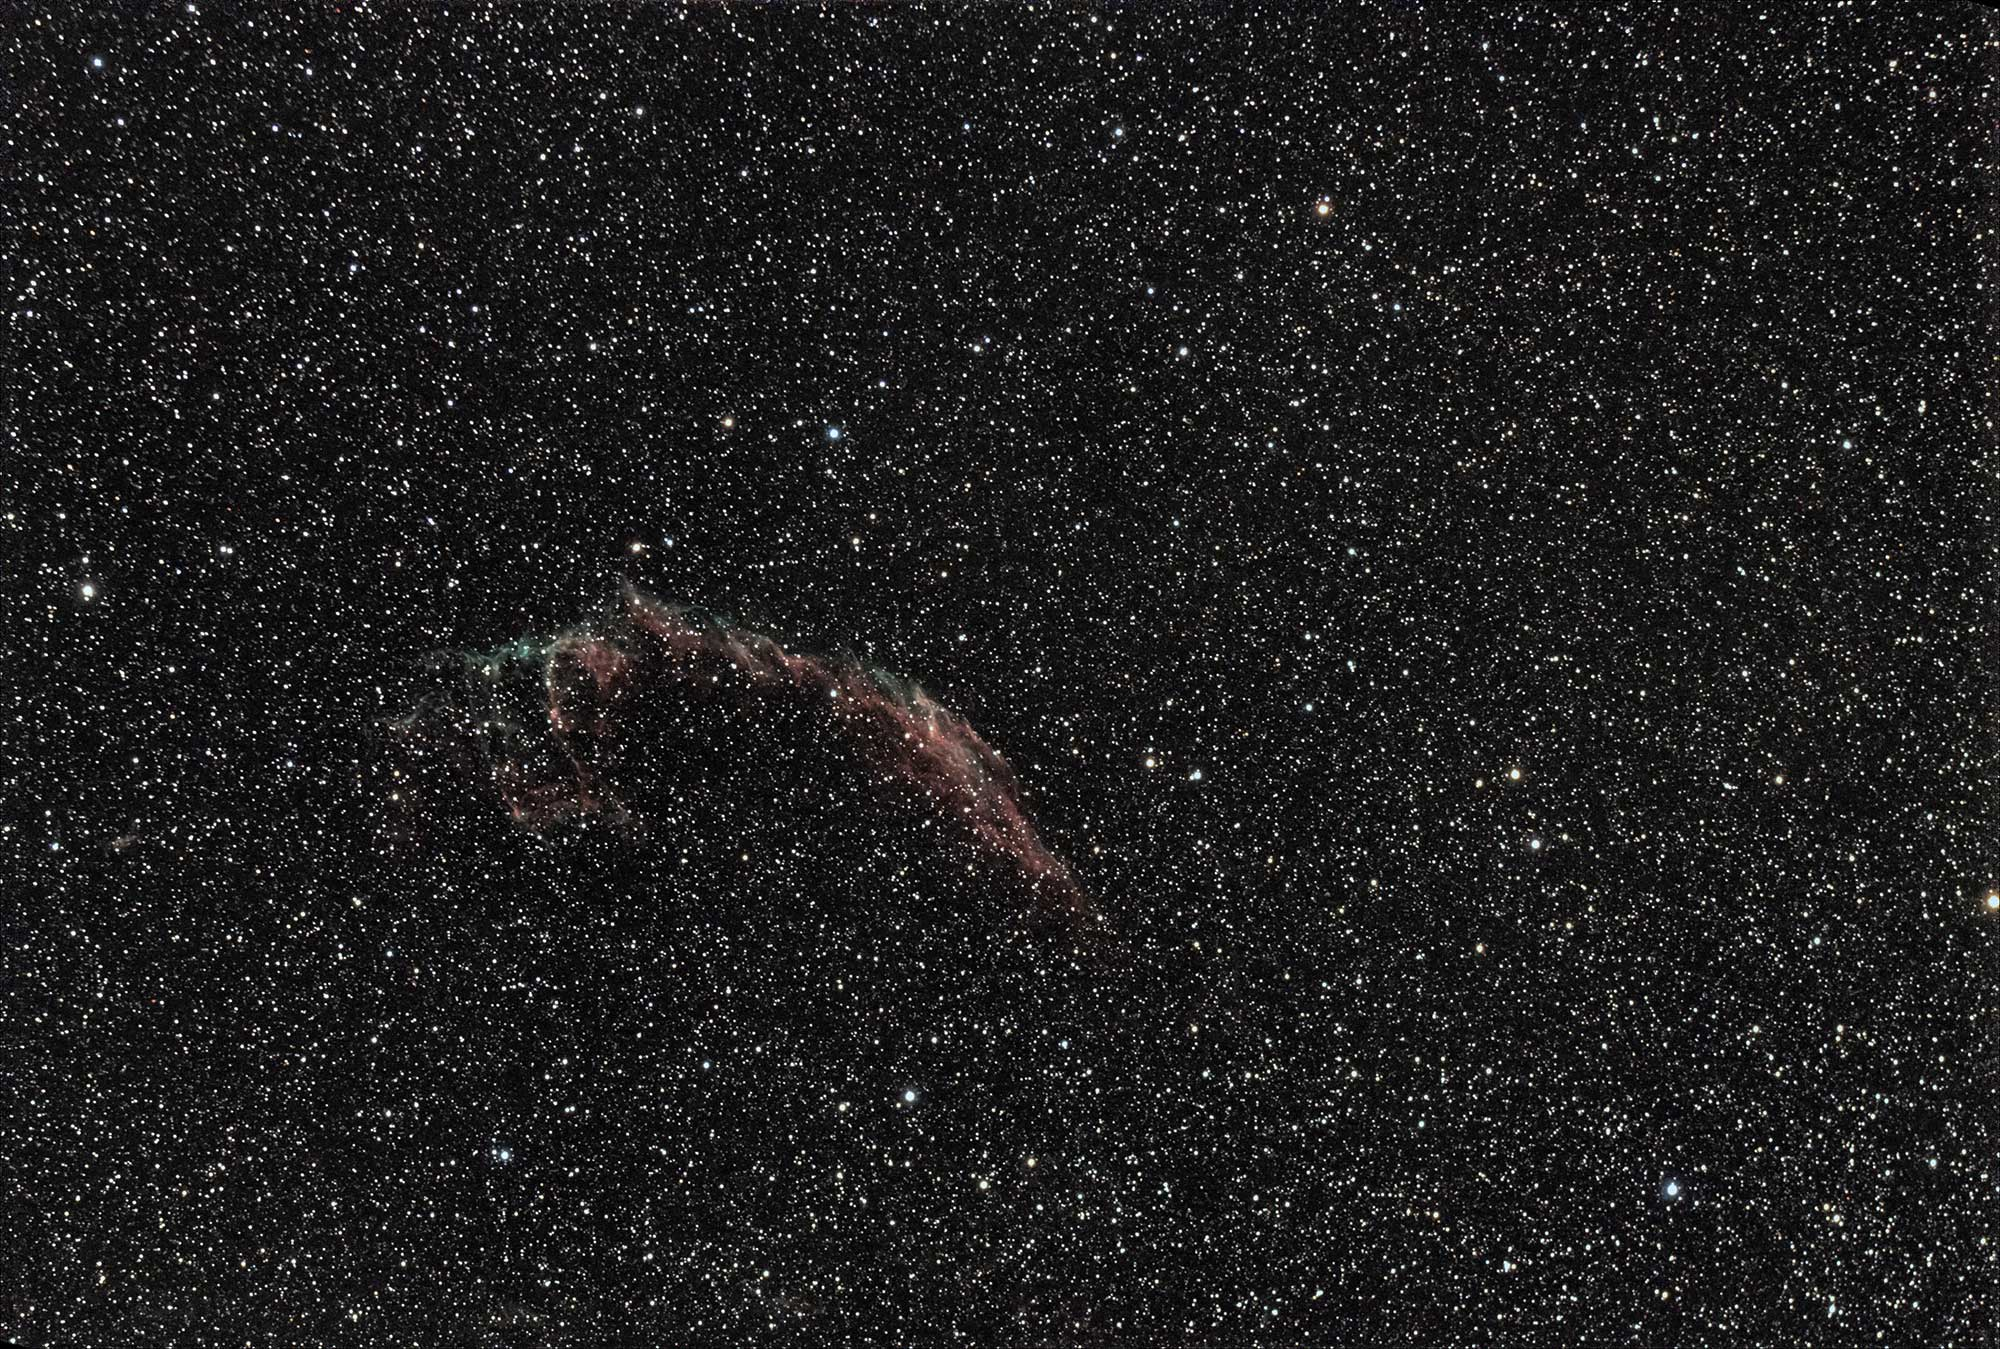 The Veil Nebular - Captured with William Optics GT71, ASI294MC Pro on A Sky Watcher Star Adventurer mount